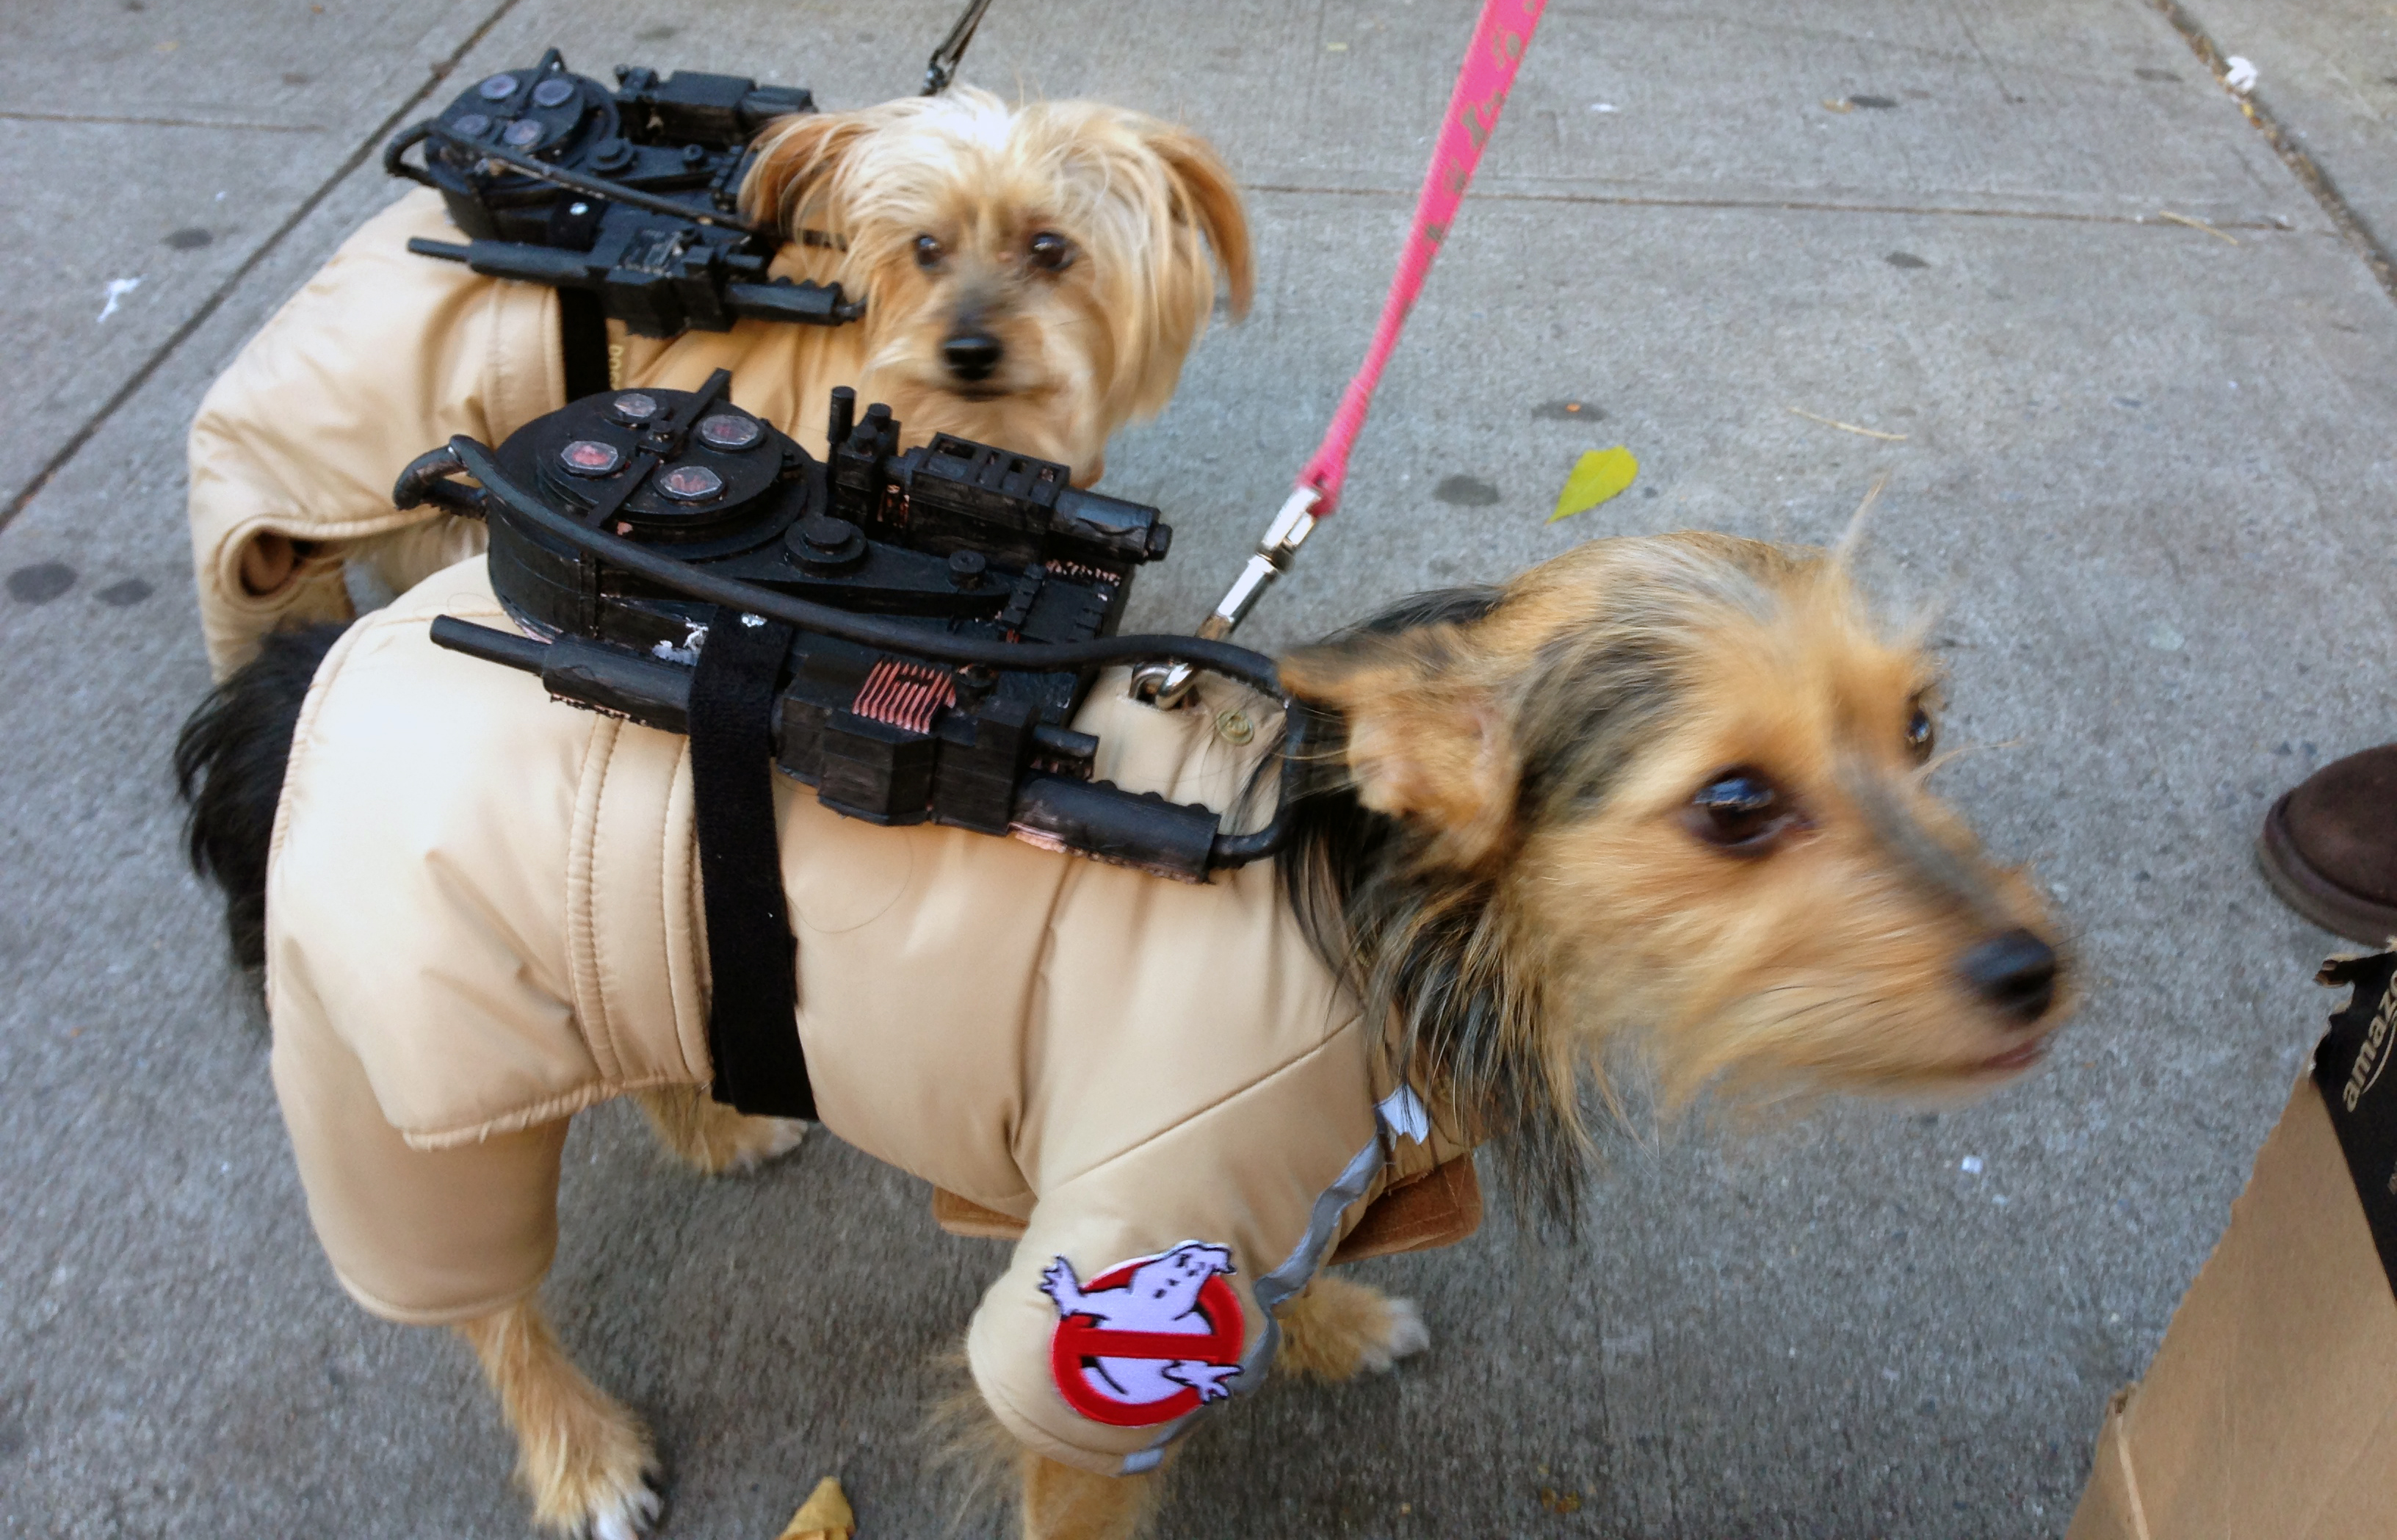 3D printed proton packs for Ryan George's dogs